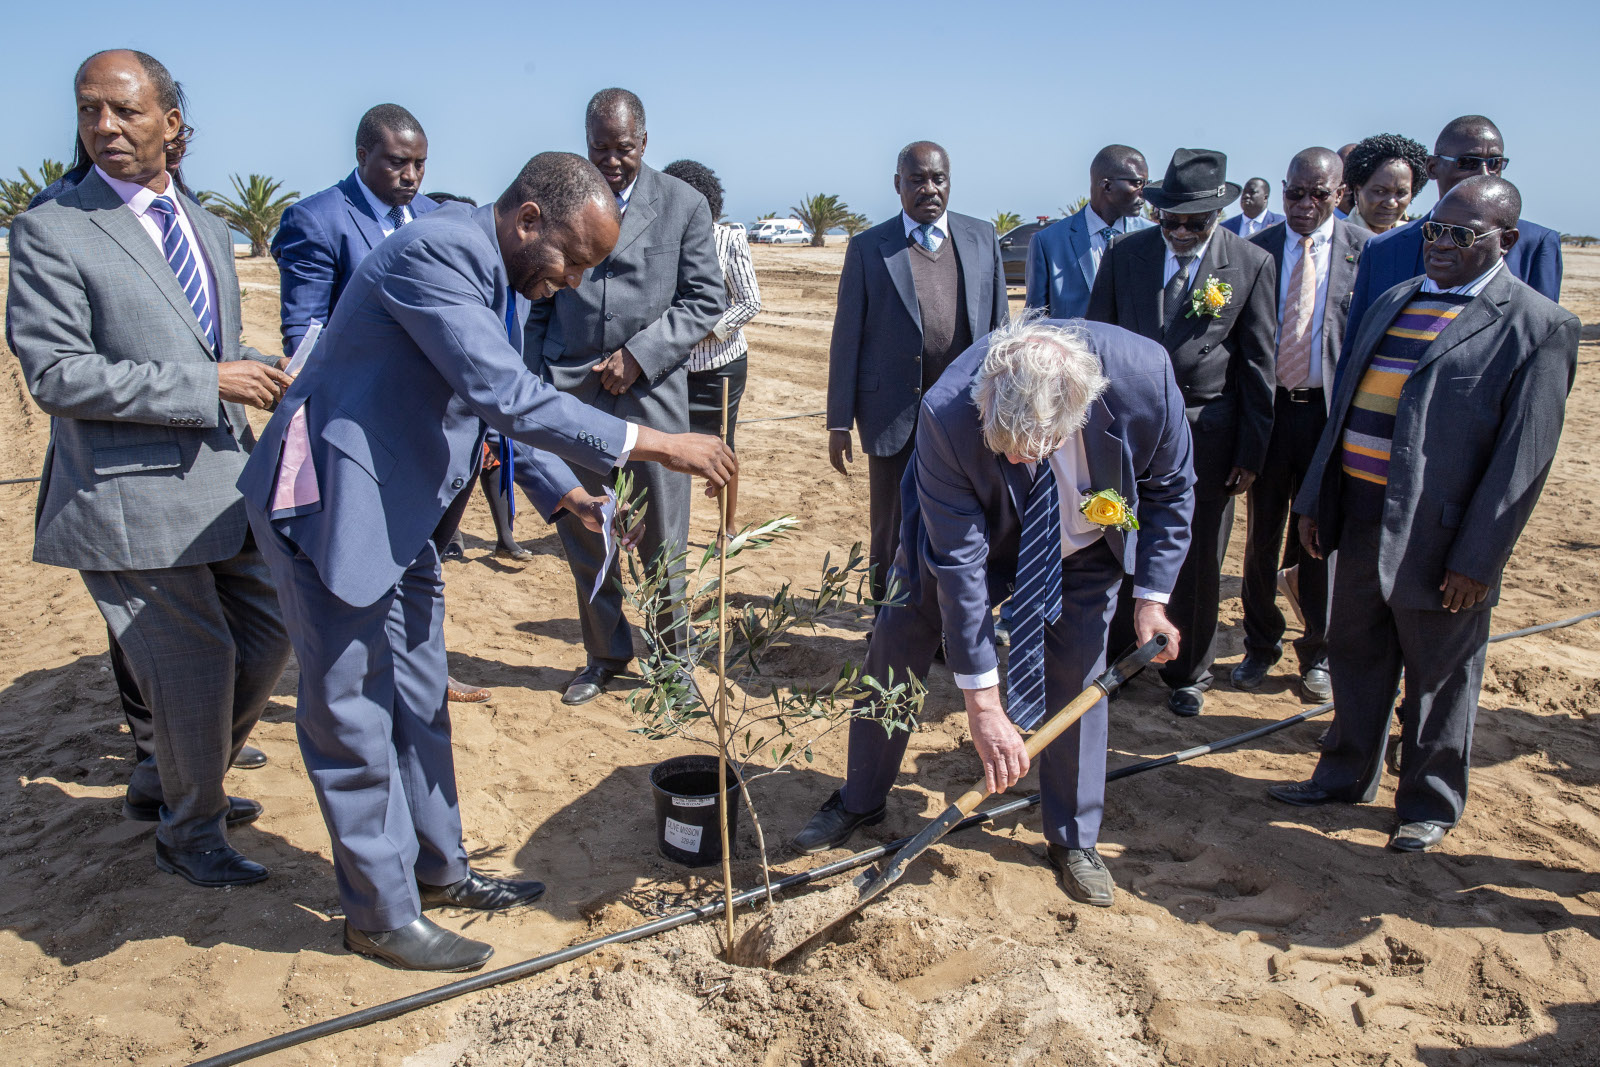 The key figures of the Carbon Garden project planting a tree wearing suits. Present are also Namibia's former president Sam Nujoma and Minister of Higher Education Itah Kandjii-Murangi.